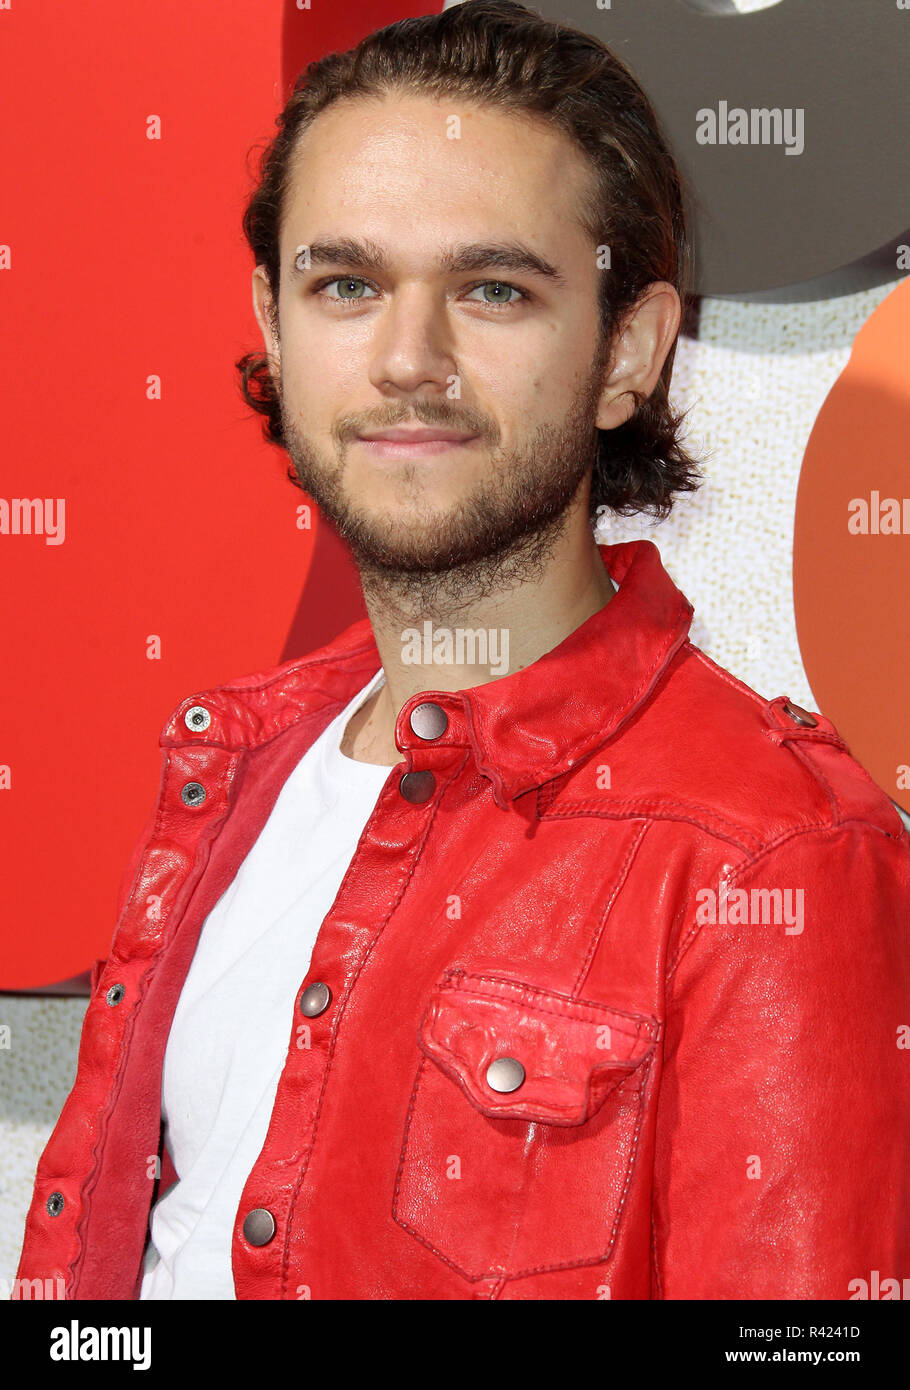 """""""Suspiria"""" Los Angeles Premiere held at The Arclight Hollywood Cinema Dome in Los Angeles, California.  Featuring: Zedd Where: Los Angeles, California, United States When: 24 Oct 2018 Credit: Adriana M. Barraza/WENN.com Stock Photo"""